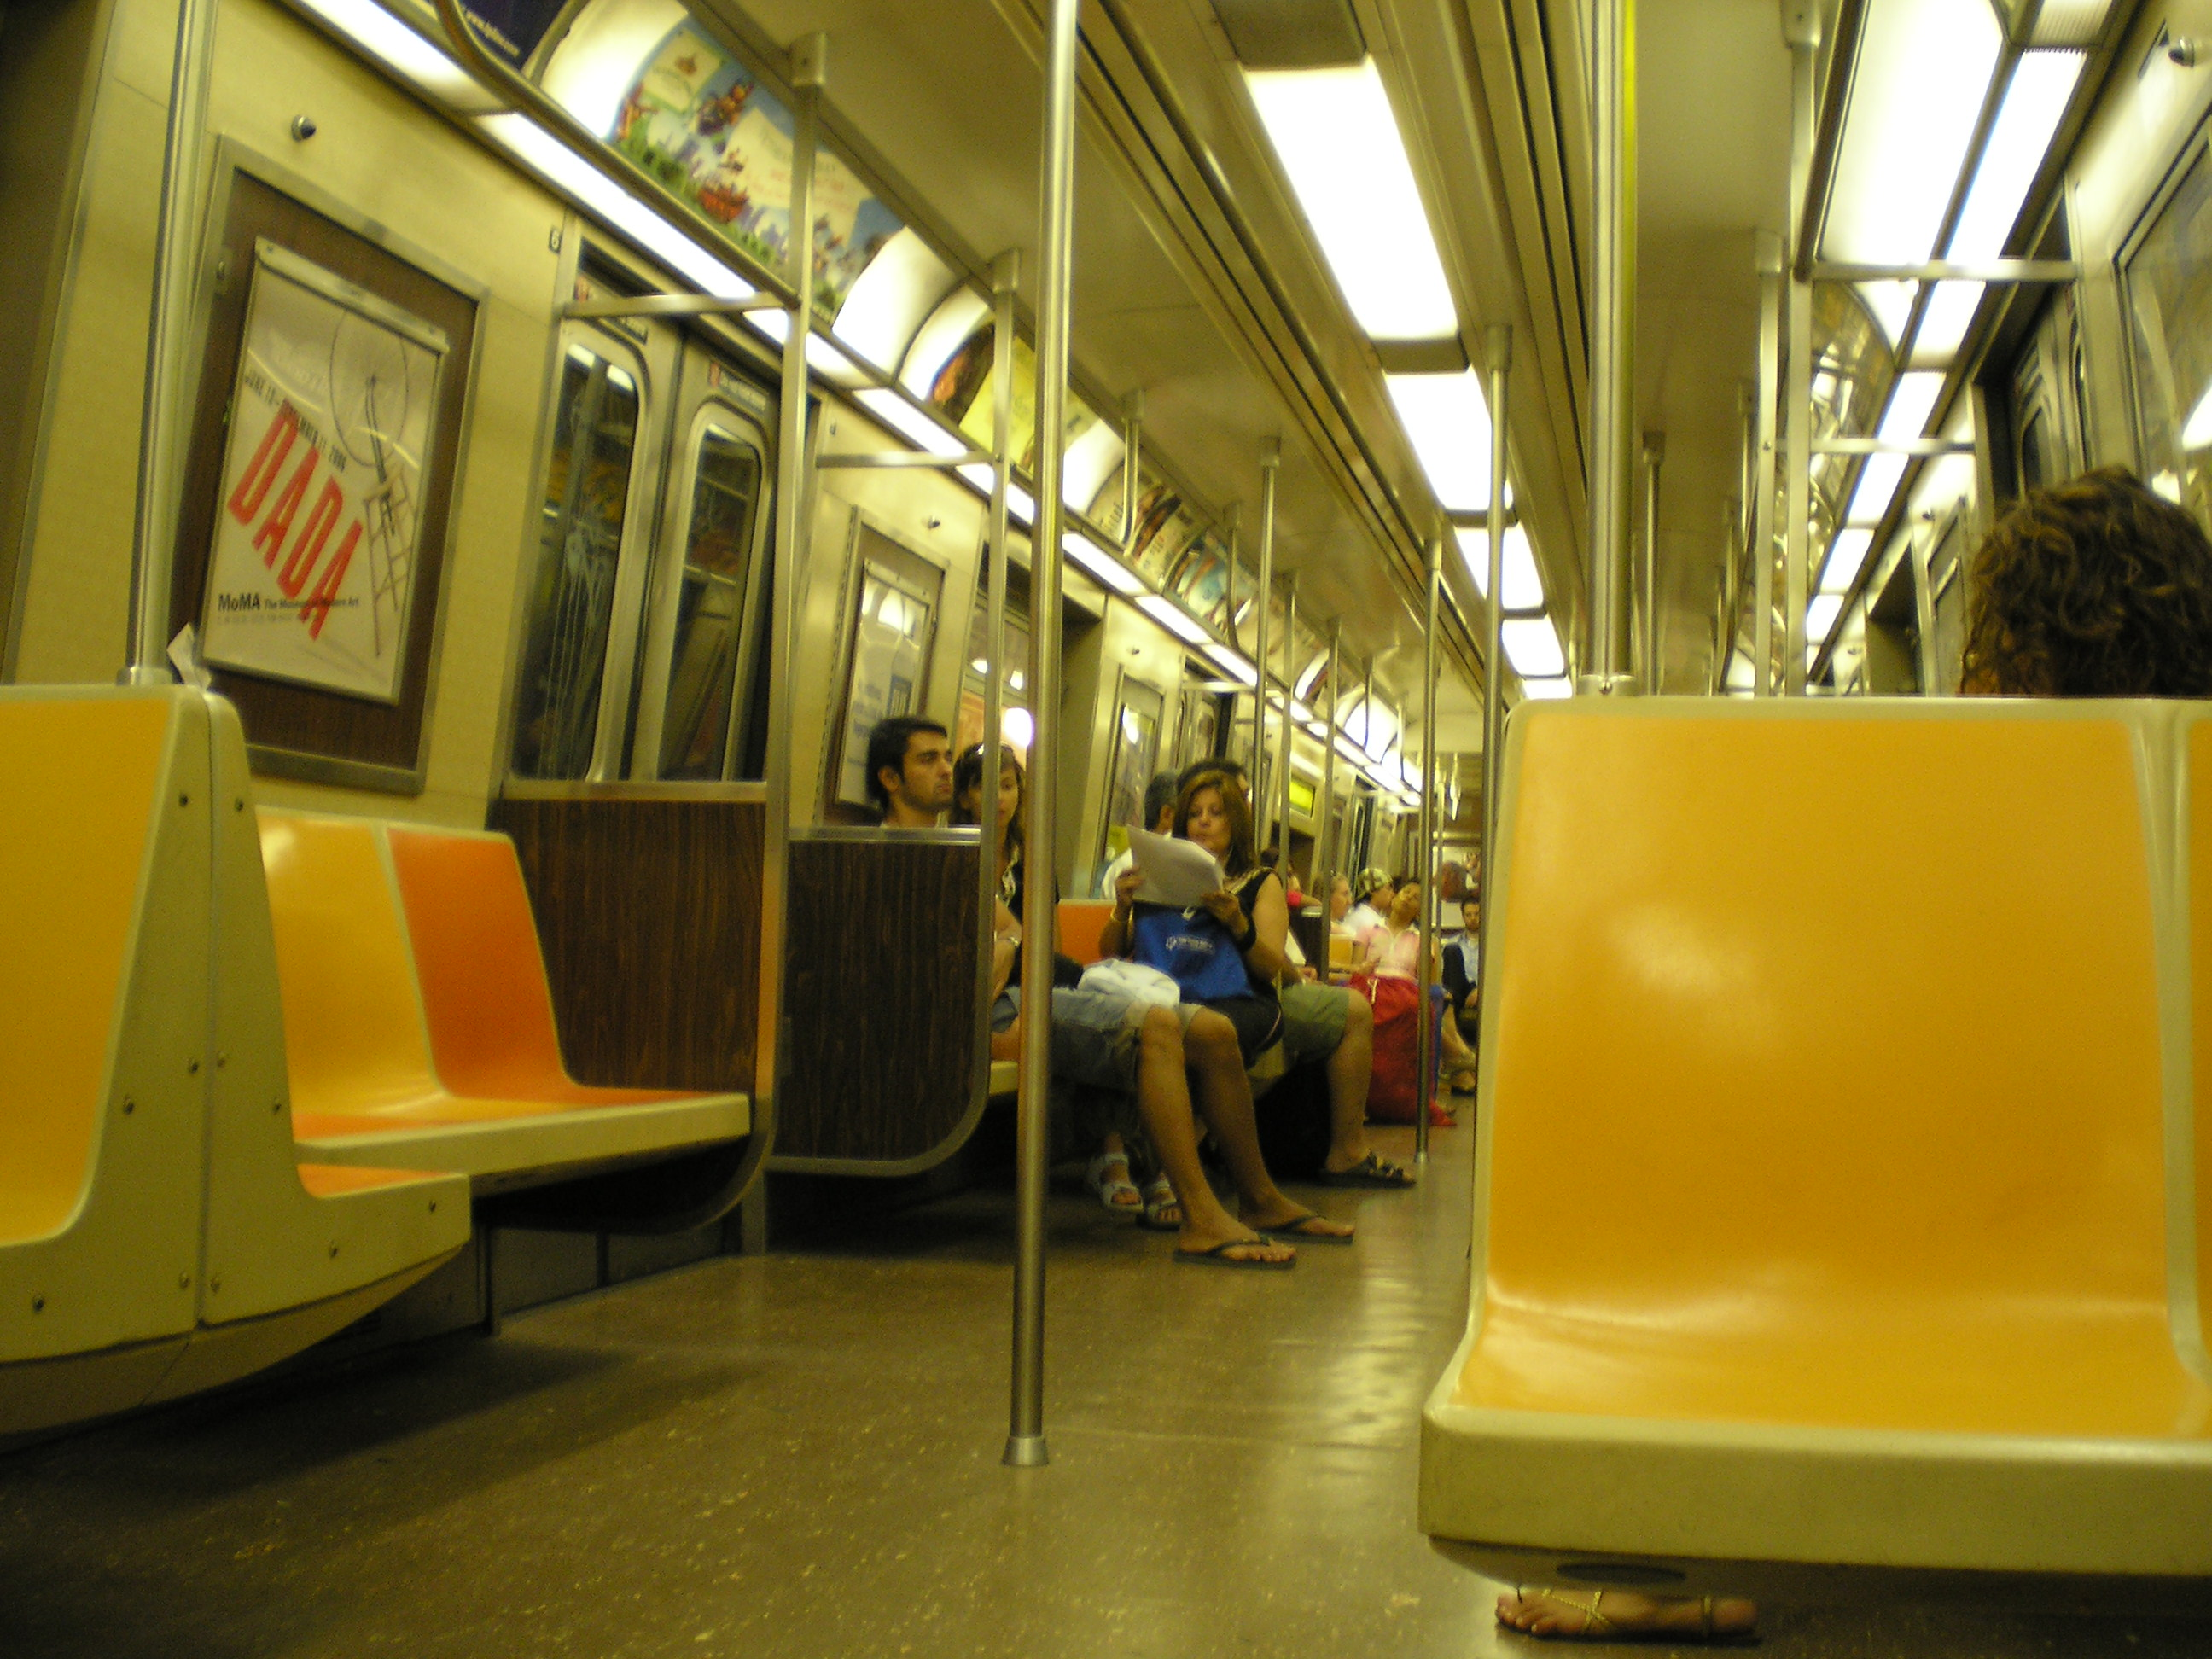 r46 new york city subway car. Black Bedroom Furniture Sets. Home Design Ideas